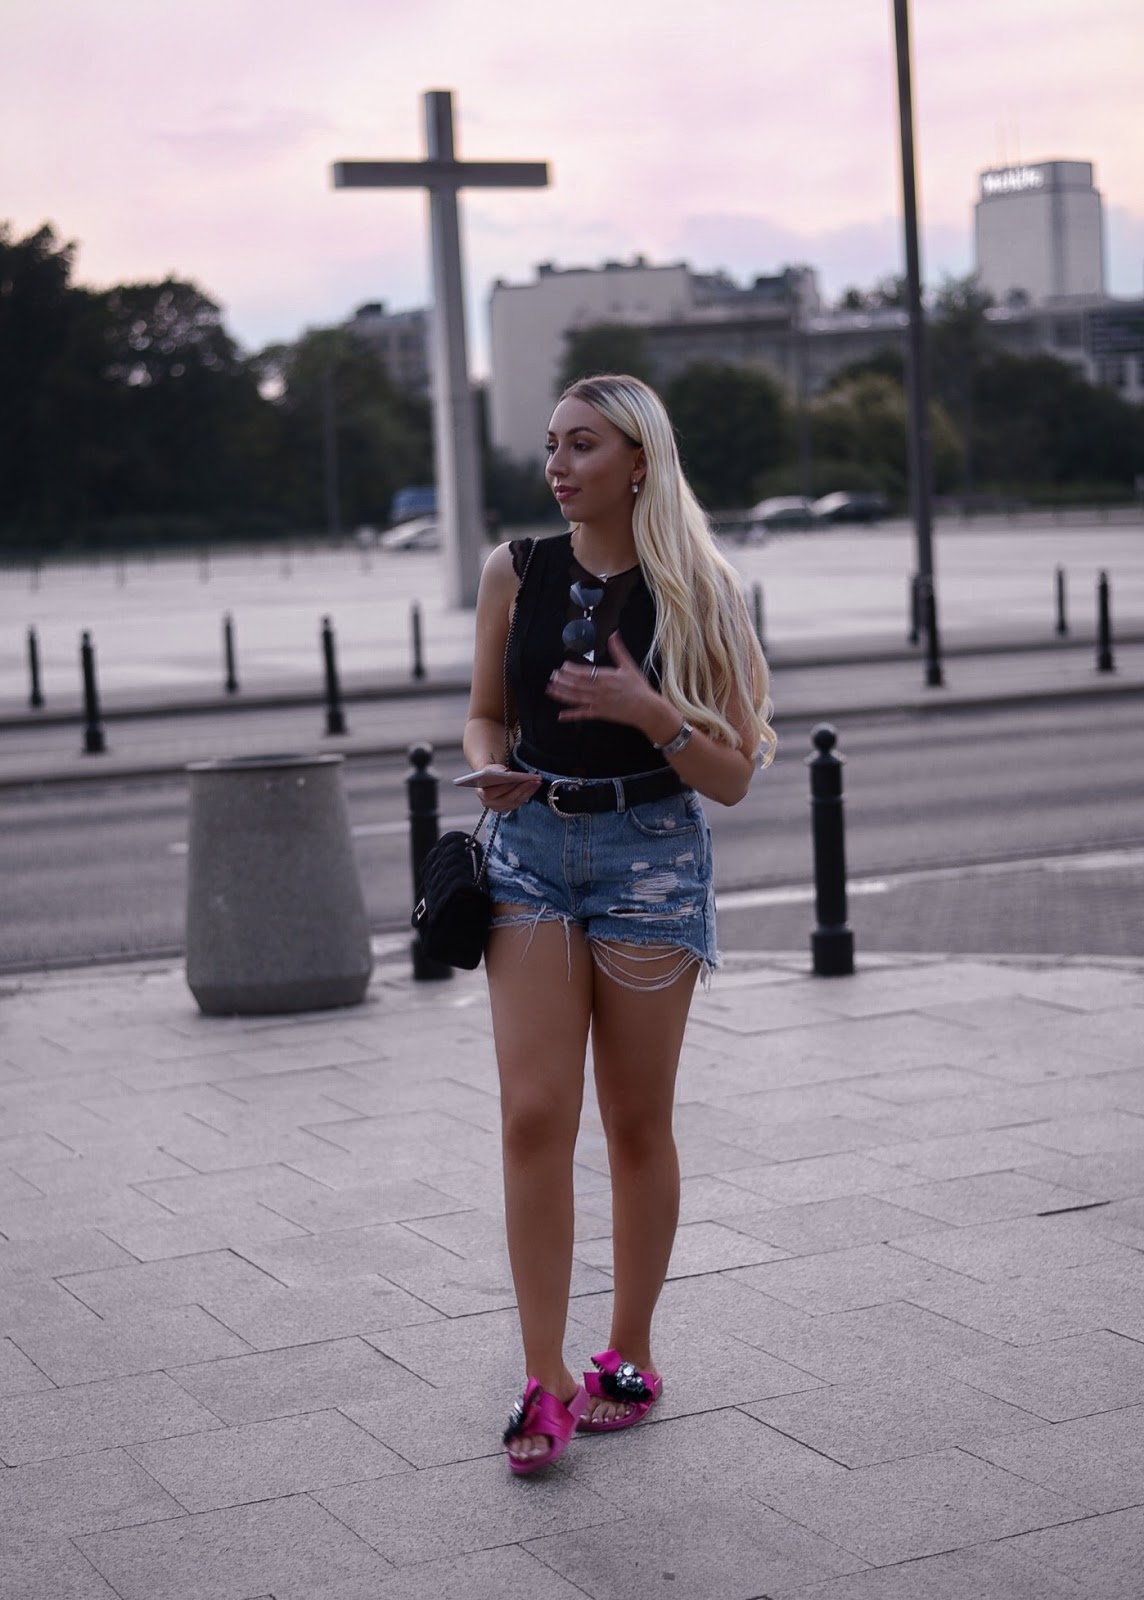 warsaw travel quide_ripped high waisted shorts_pink slides_lace bodysuit